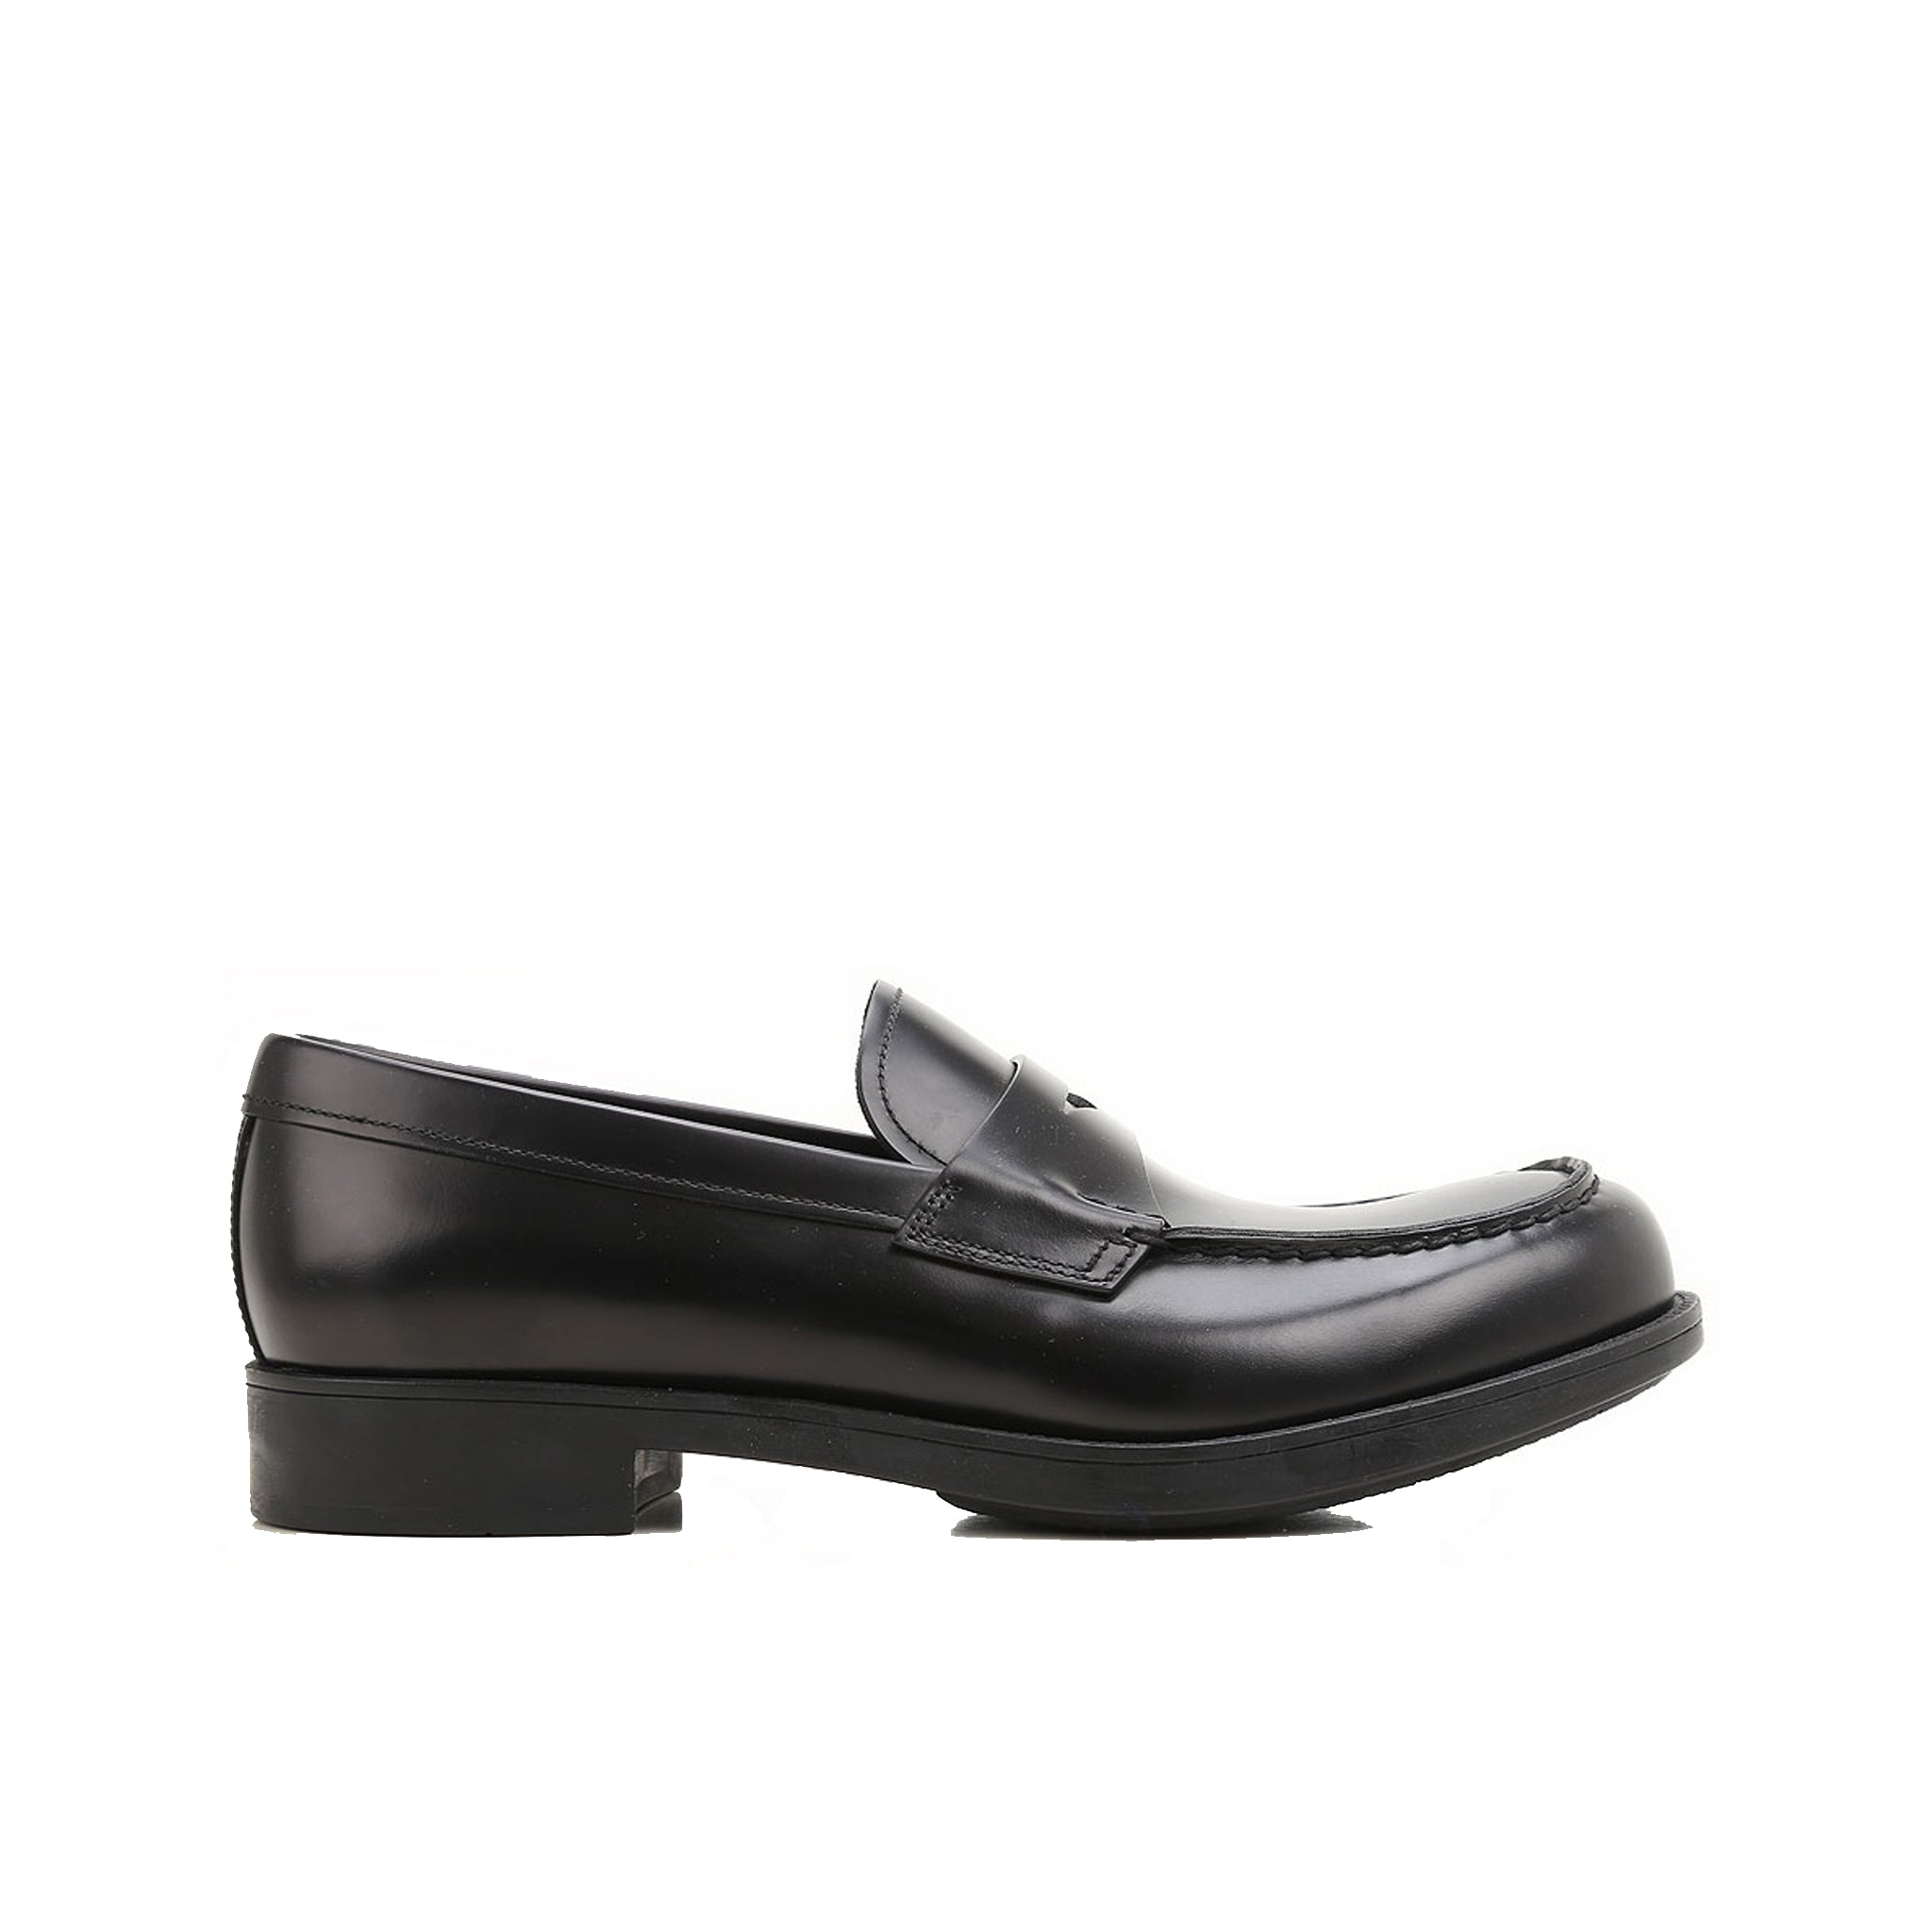 Prada Leather Loafers